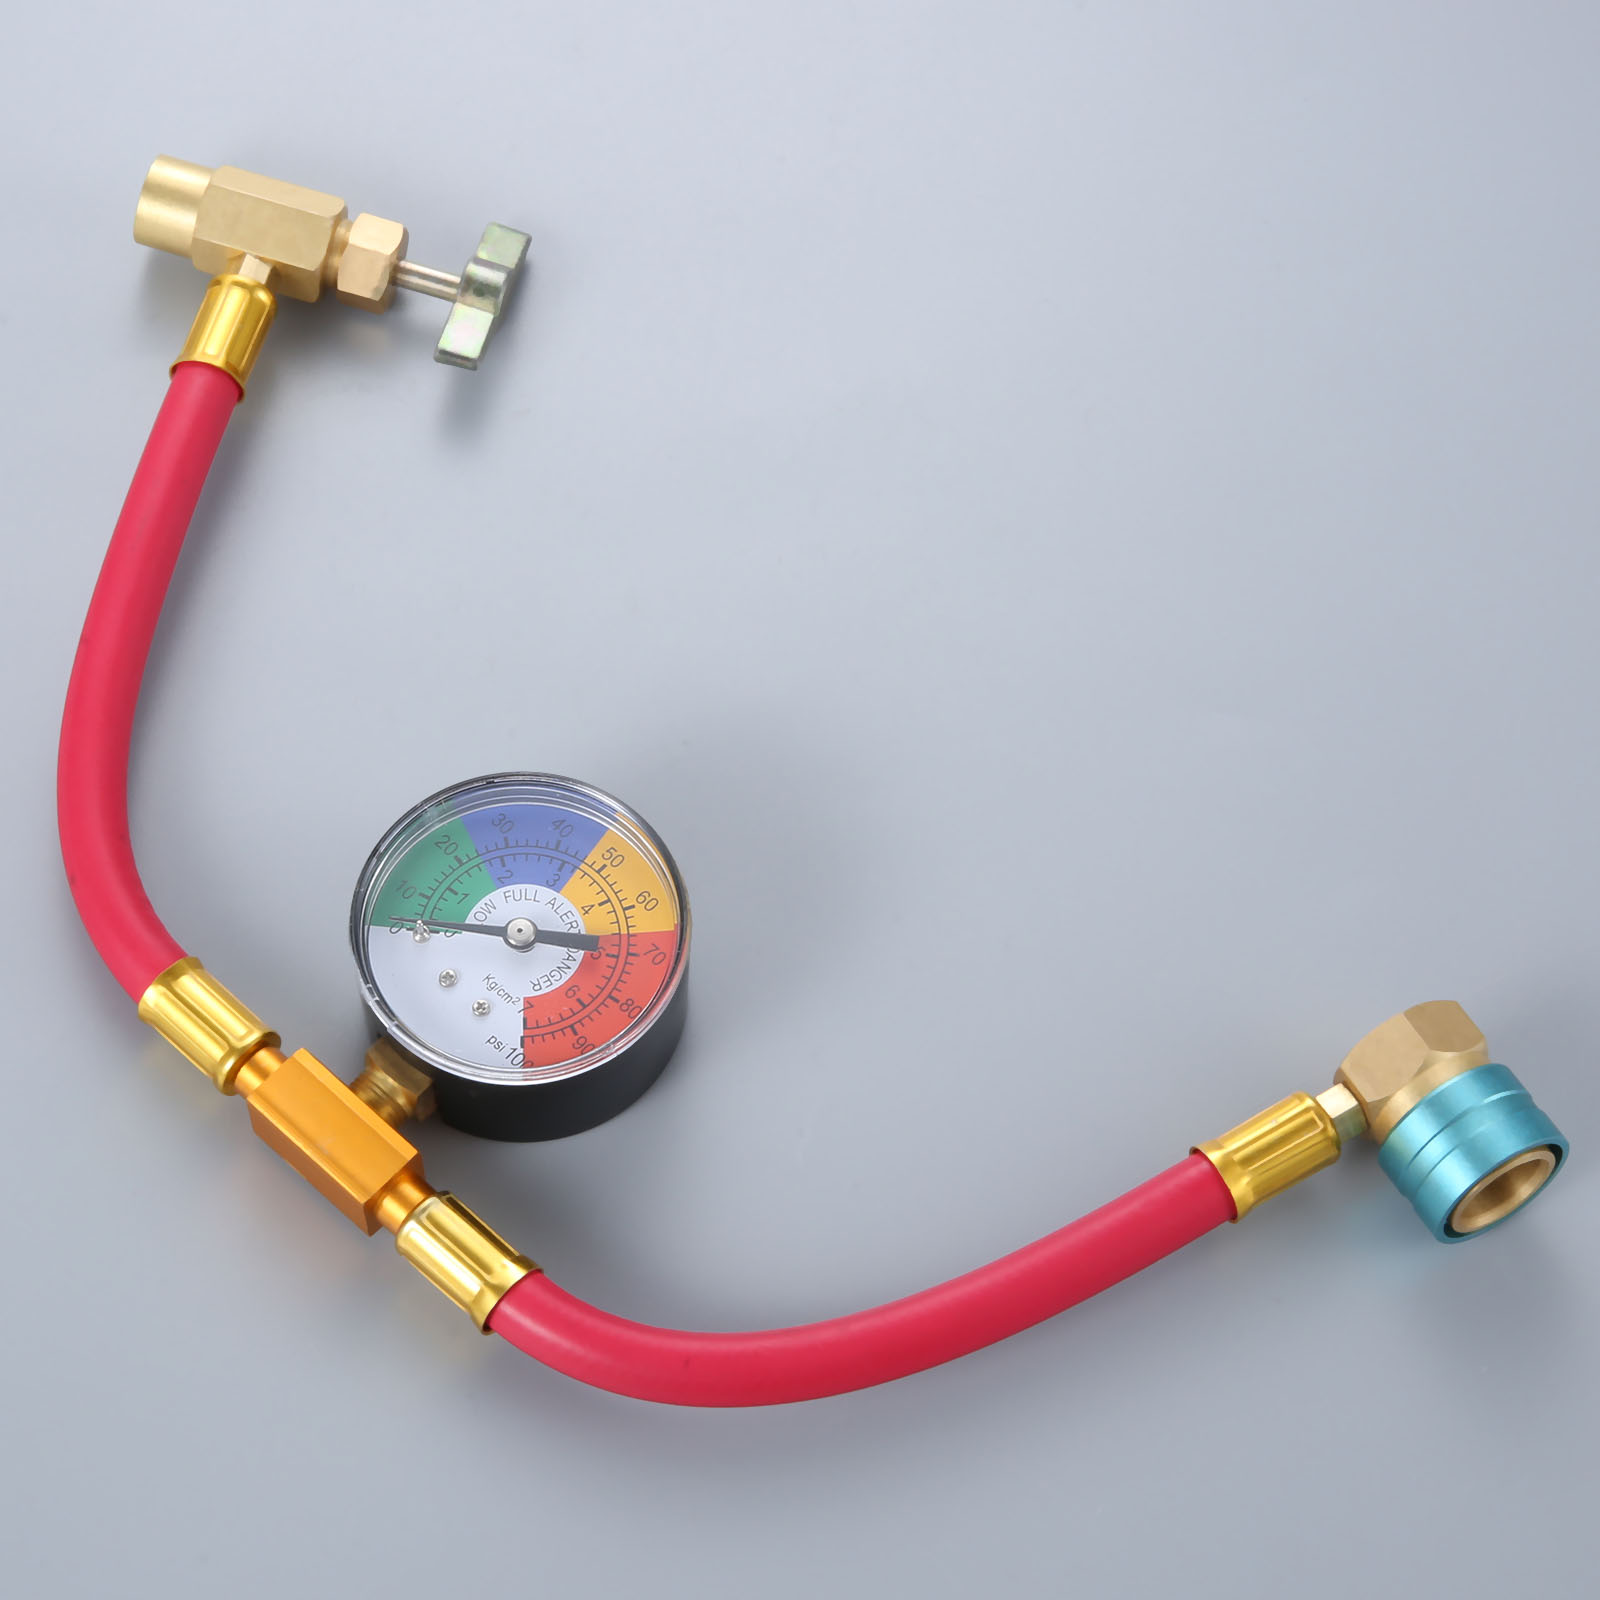 Image 5 - Low Side R1234yf Quick Coupler Refrigerant Recharge Hose Kit Pressure Gauge Can Opener Quick Coupler-in Air-conditioning Installation from Automobiles & Motorcycles